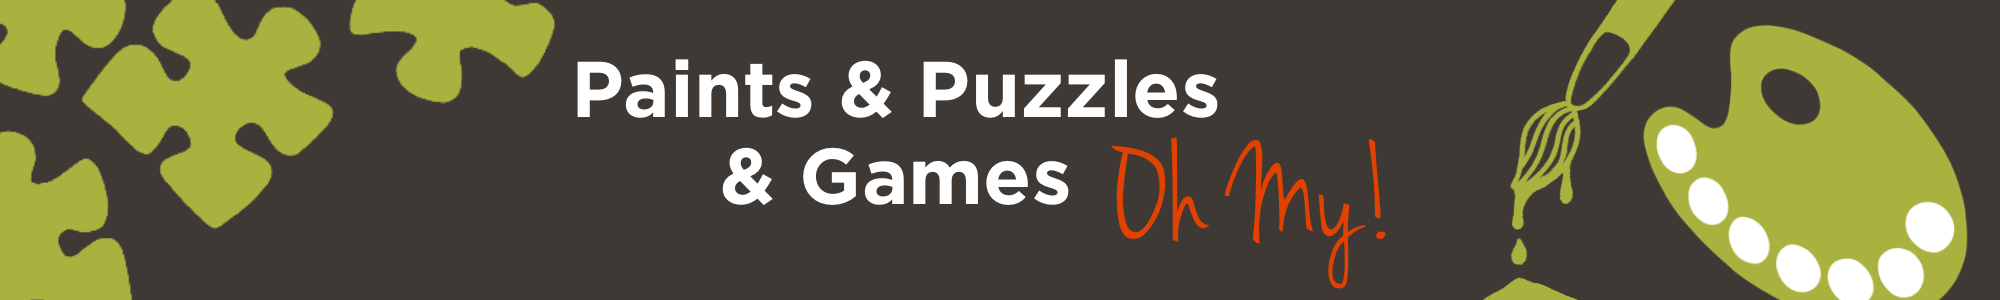 Best Games and Puzzles of 2020 2021 for the family intellectual leaning